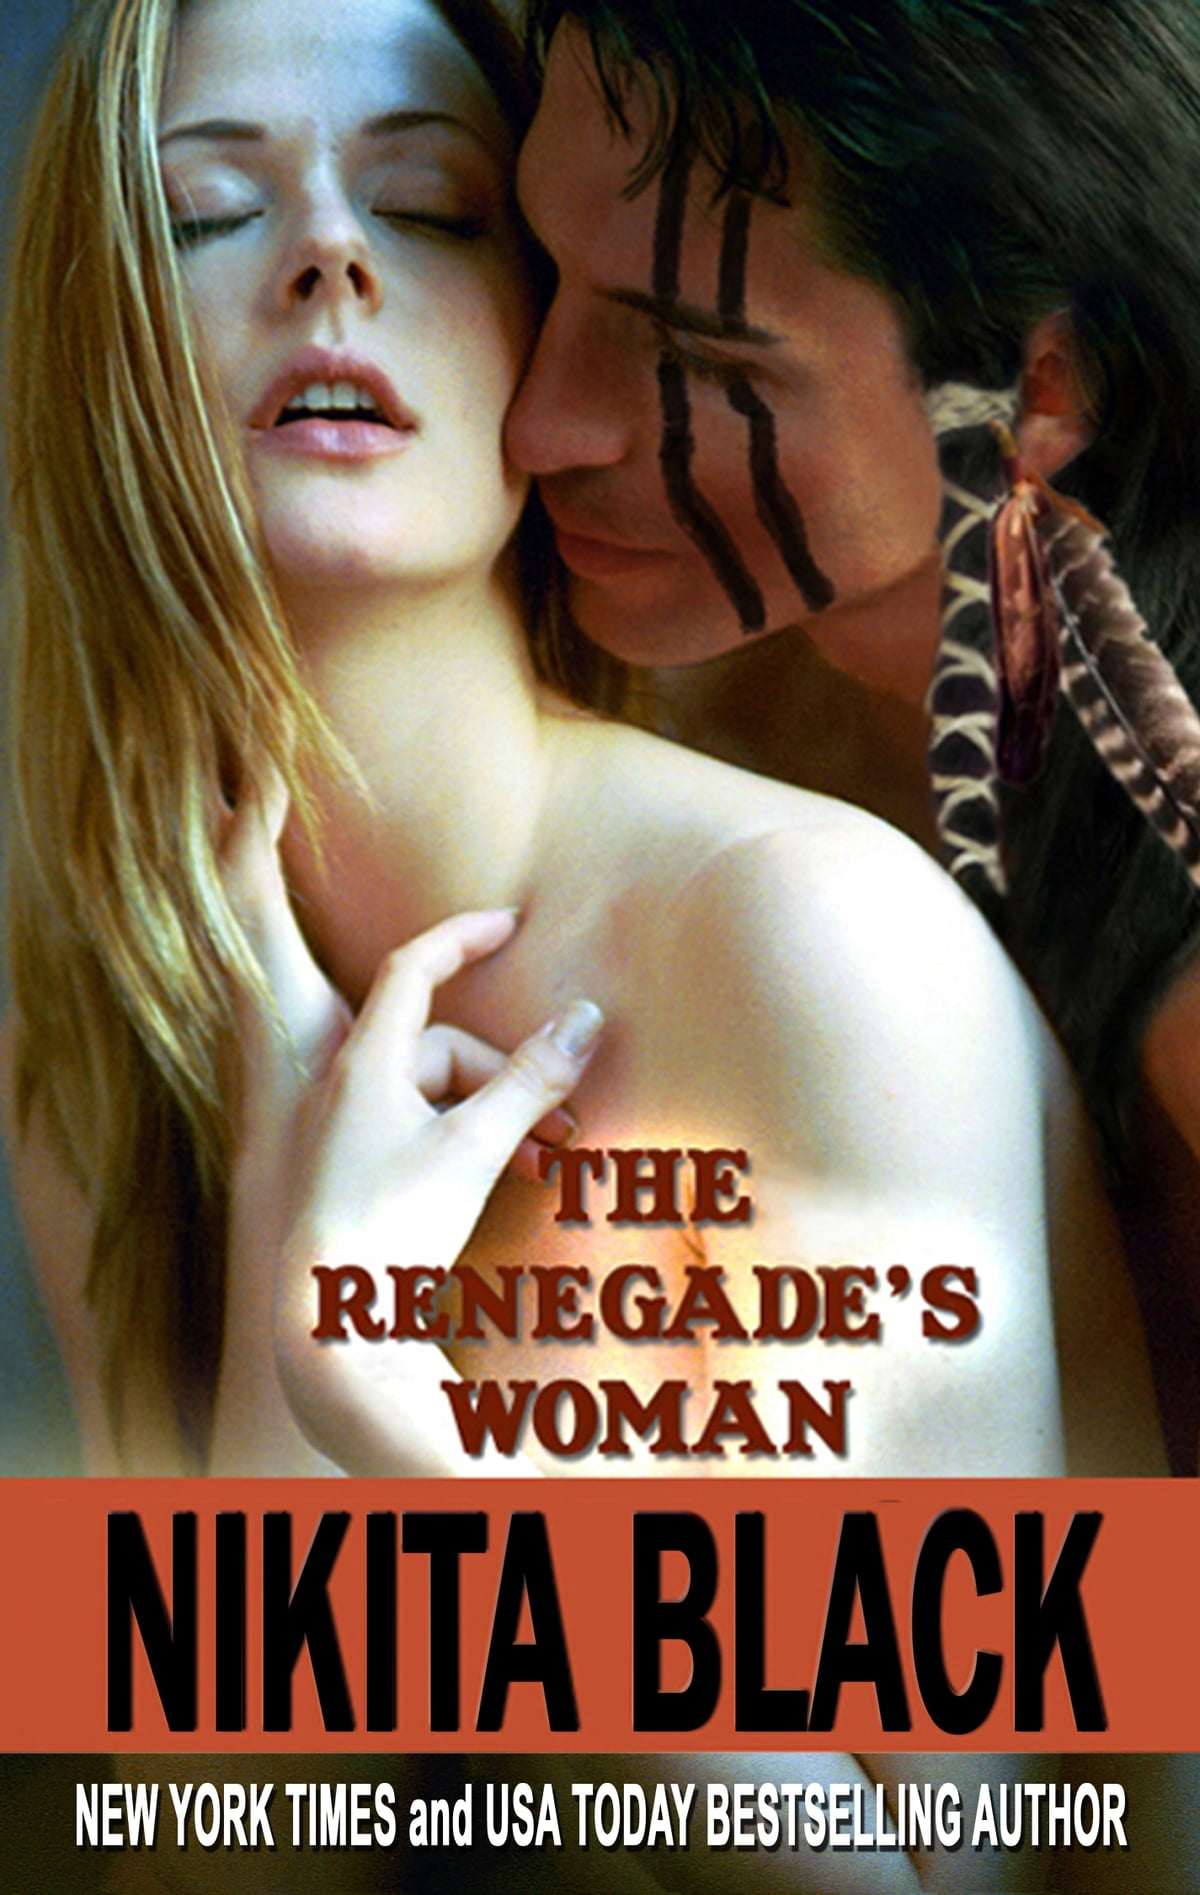 The Renegade's Woman eBook by Nikita Black - 1230000559300 | Rakuten Kobo